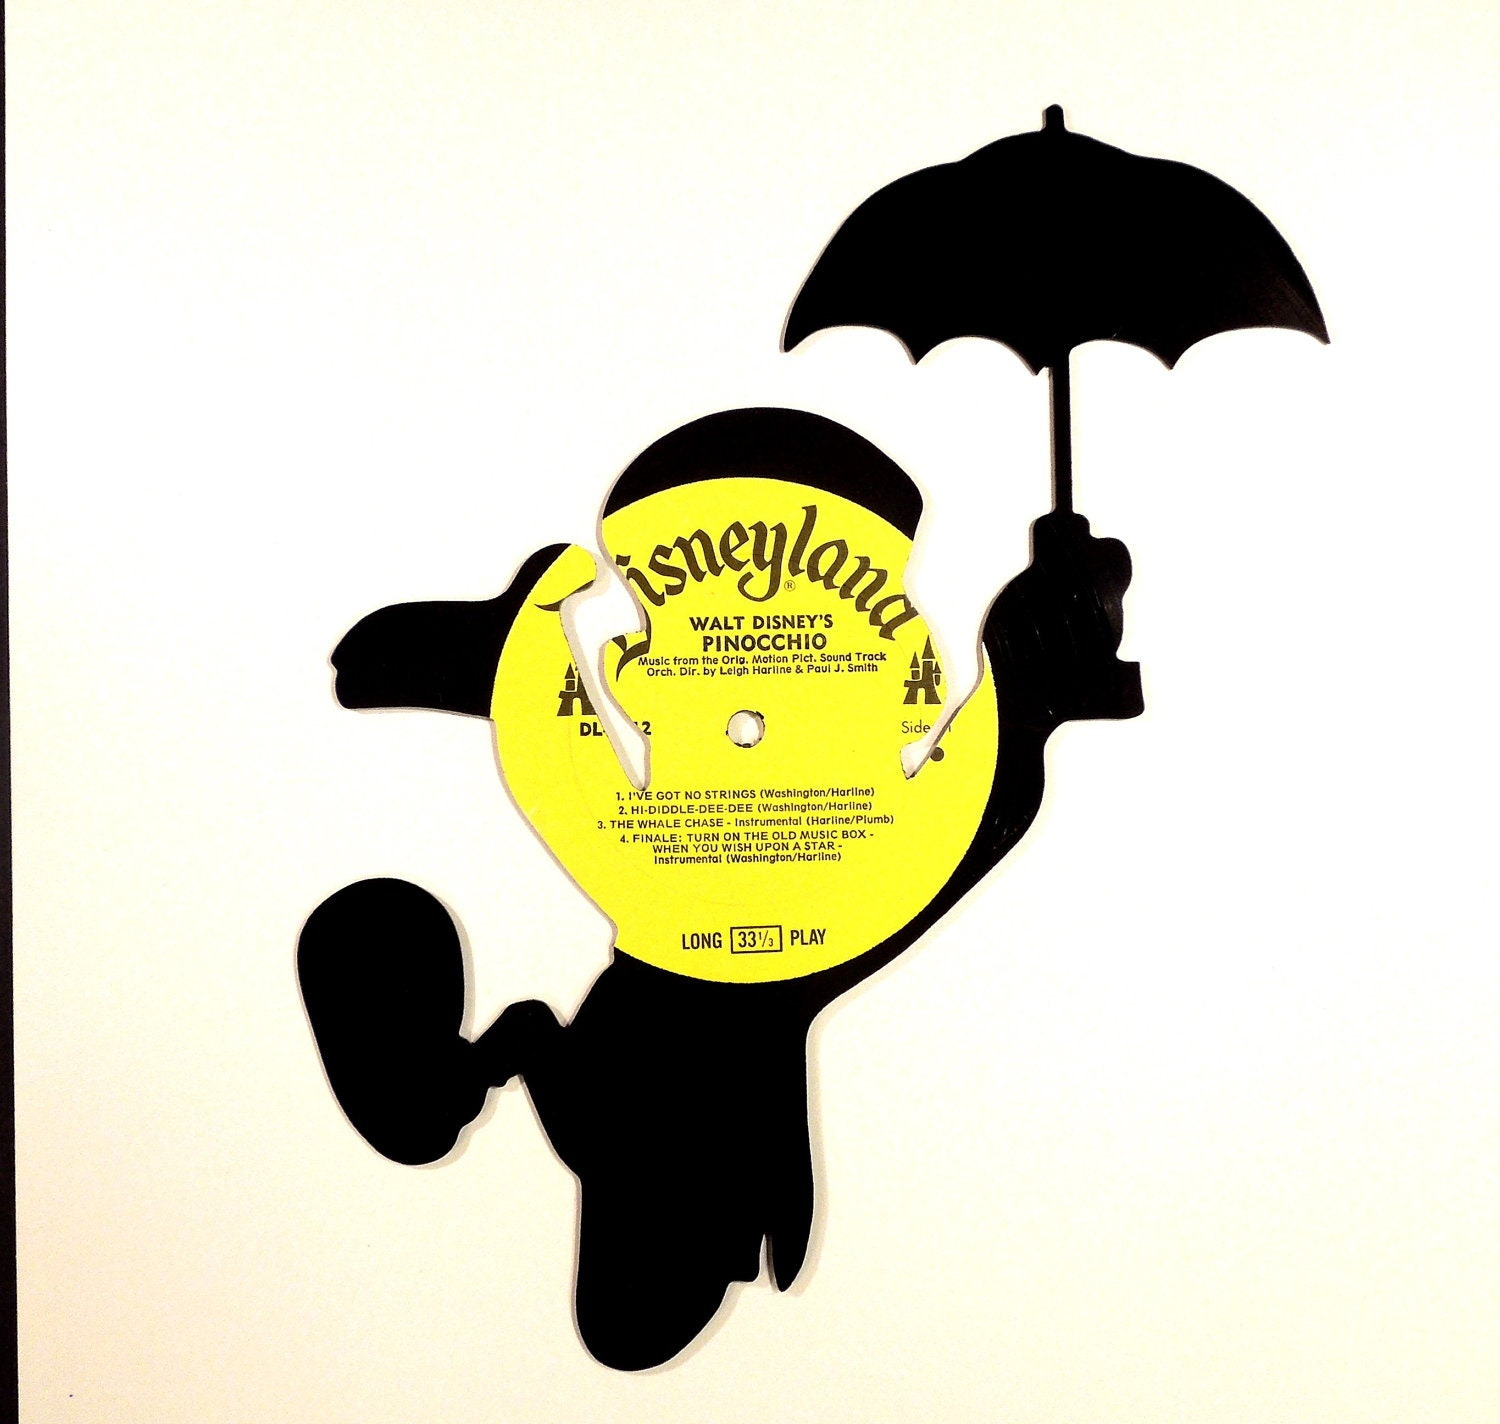 JIMINY CRICKET silhouette made from vinyl record album PINOCCHIO - sillyette